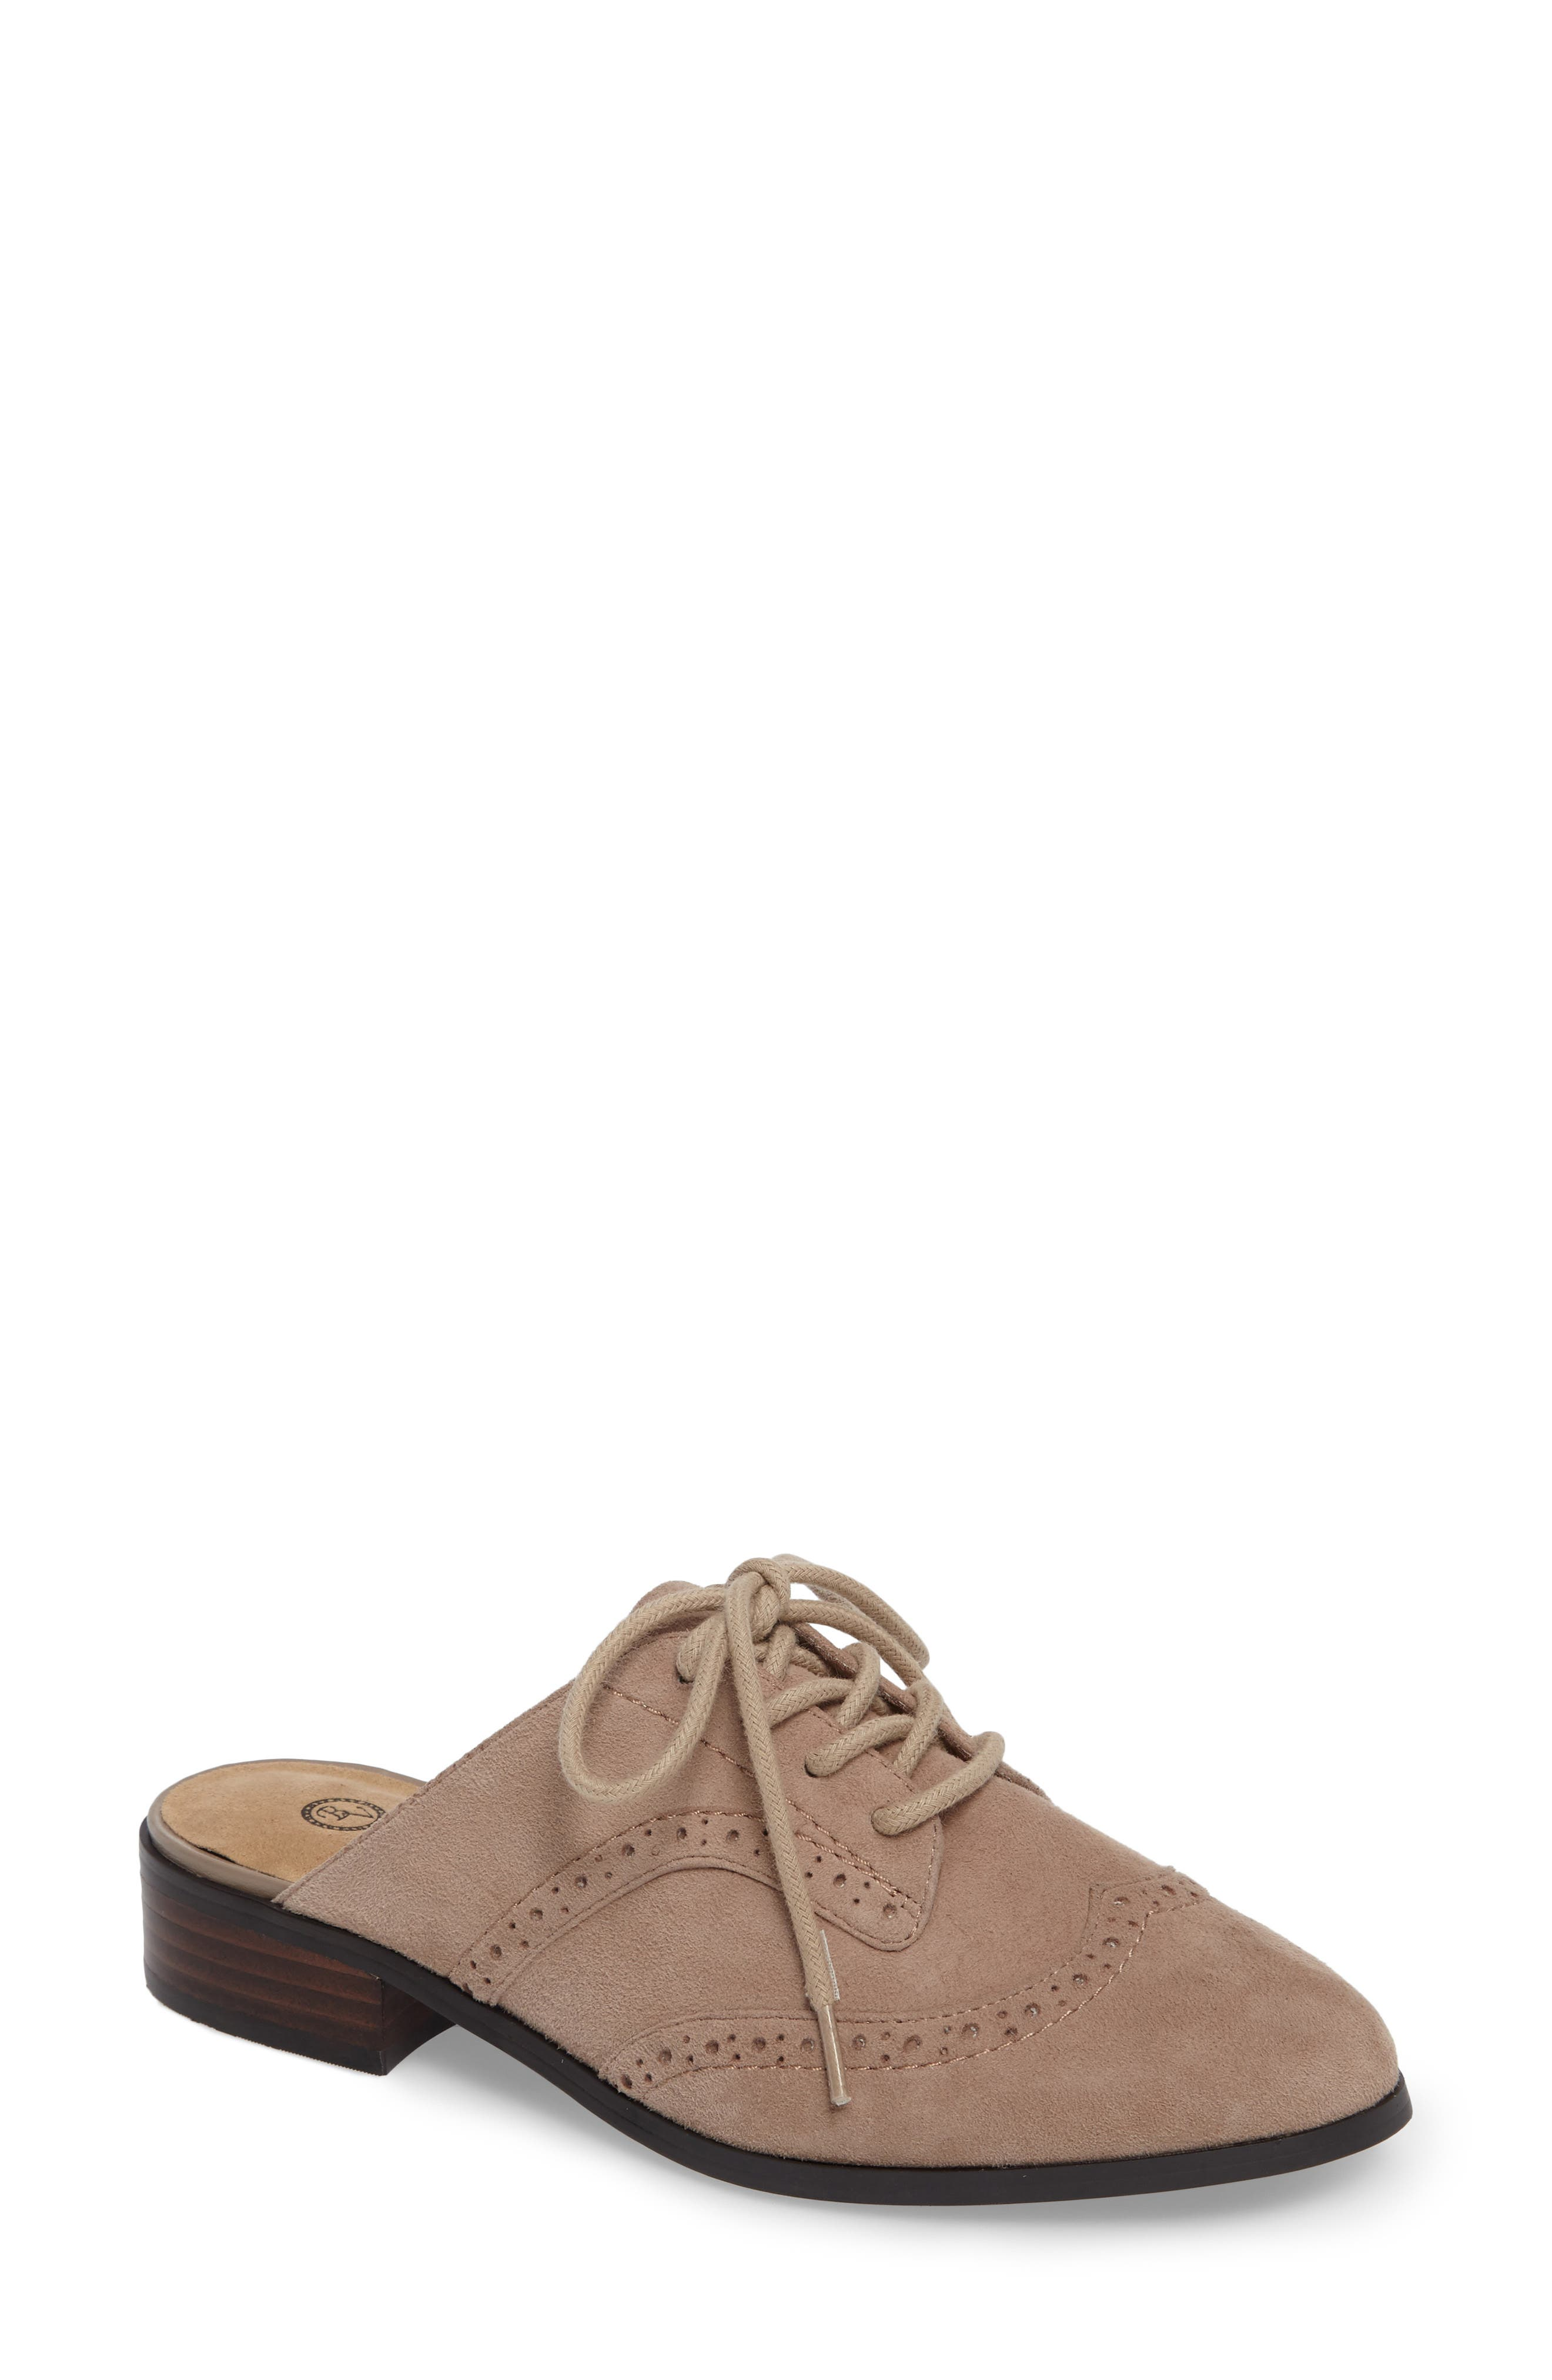 Bella Vita Baxter Loafer Mule (Women)